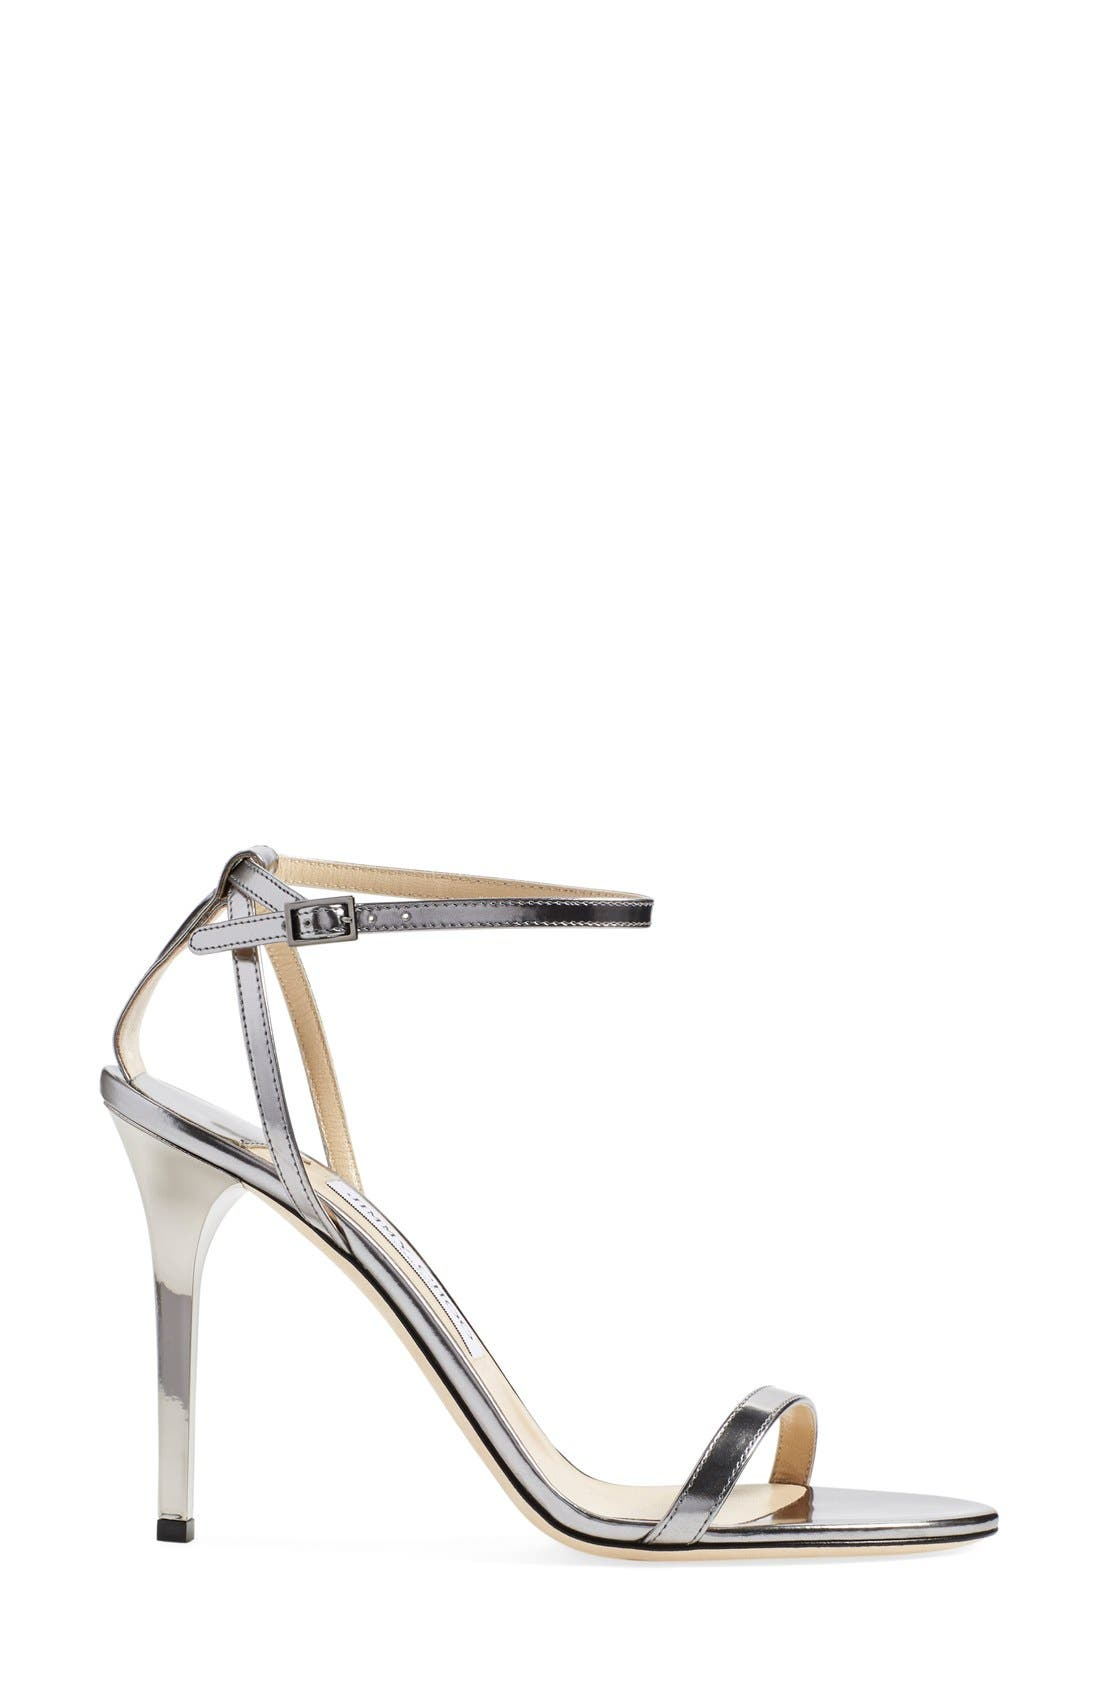 JIMMY CHOO,                             'Minny' Ankle Strap Sandal,                             Alternate thumbnail 4, color,                             040